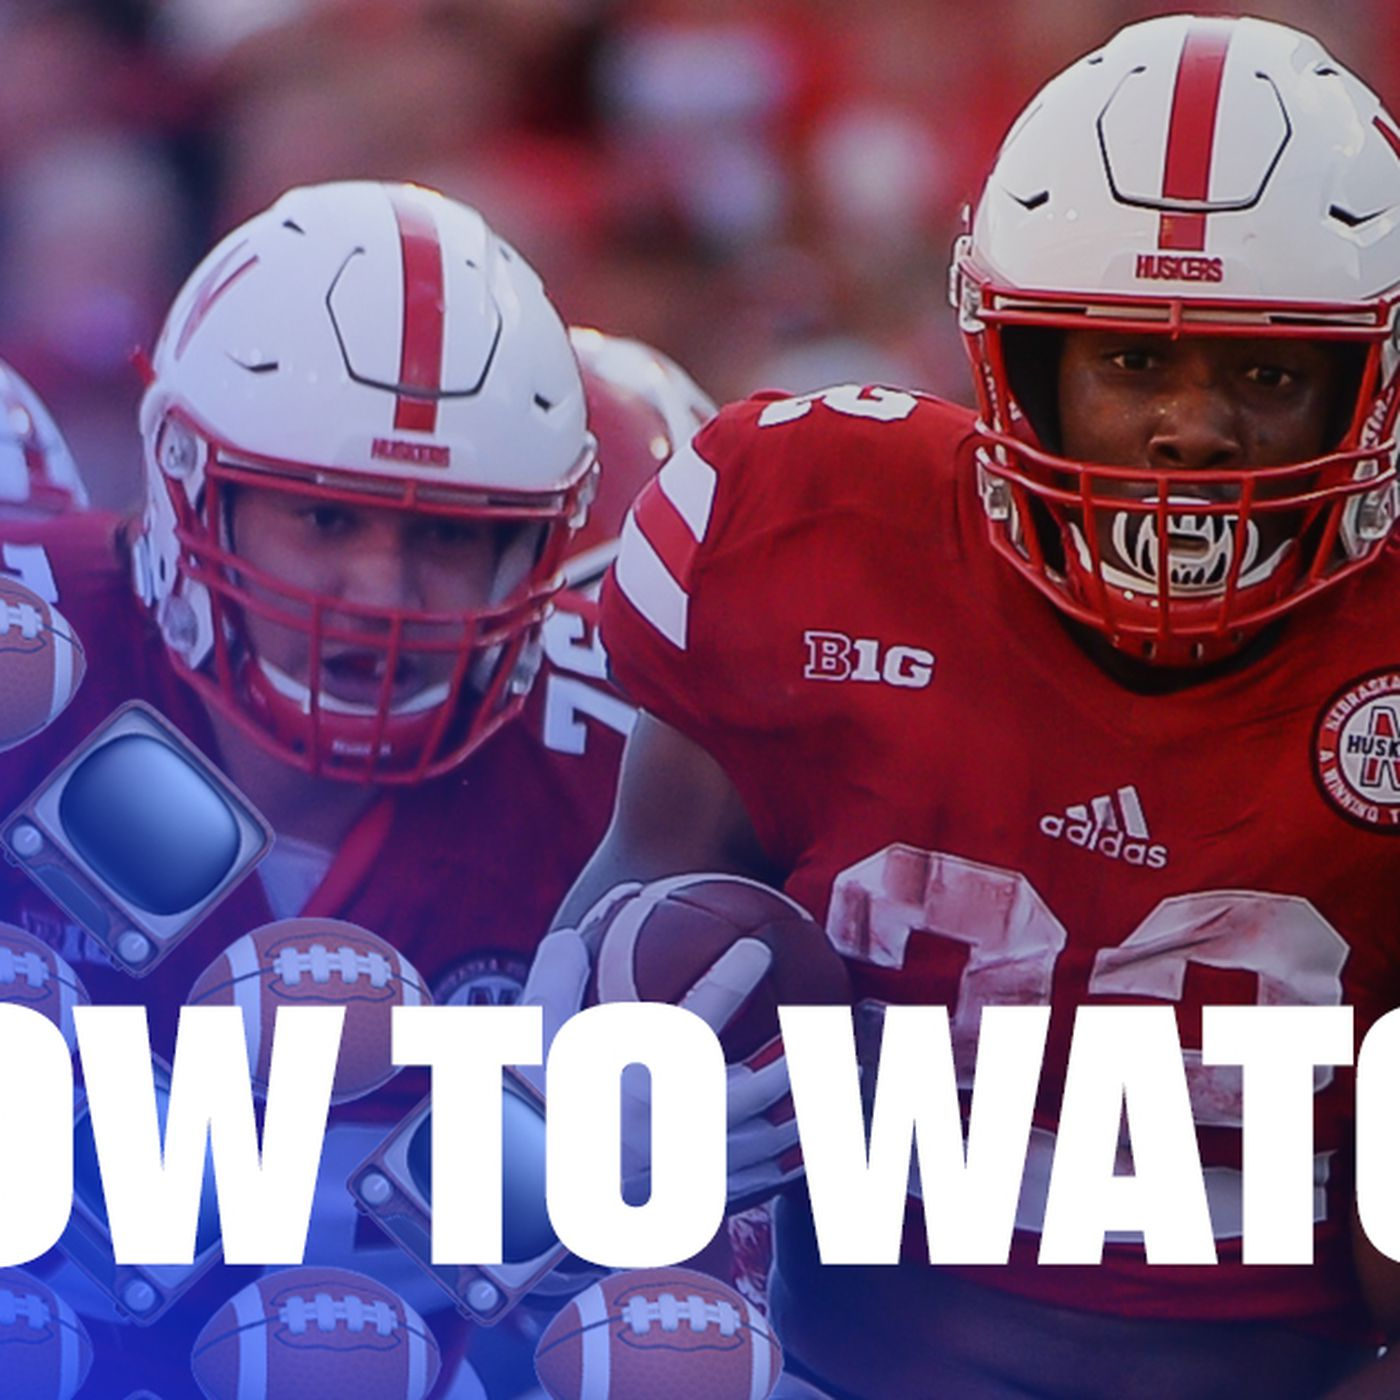 Nebraska Vs Illinois 2017 Live Stream Start Time Tv Channel And